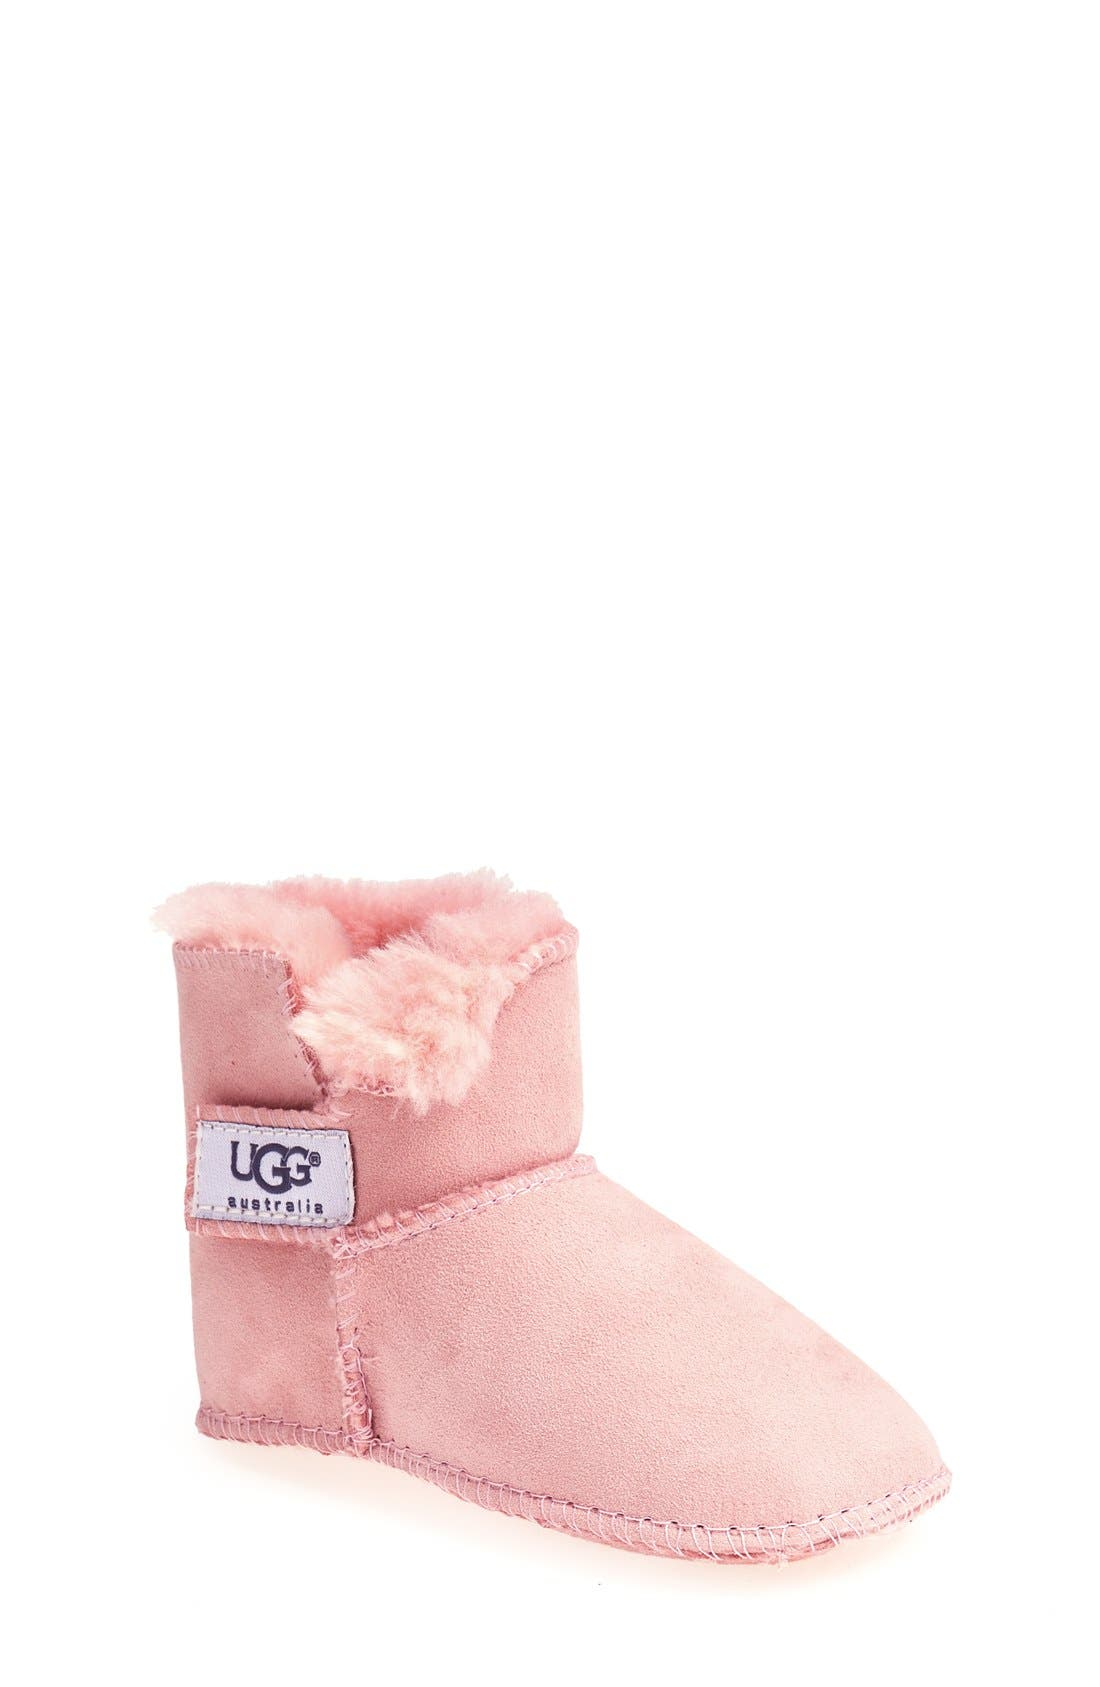 Alternate Image 1 Selected - UGG® Erin Bootie (Baby & Walker)